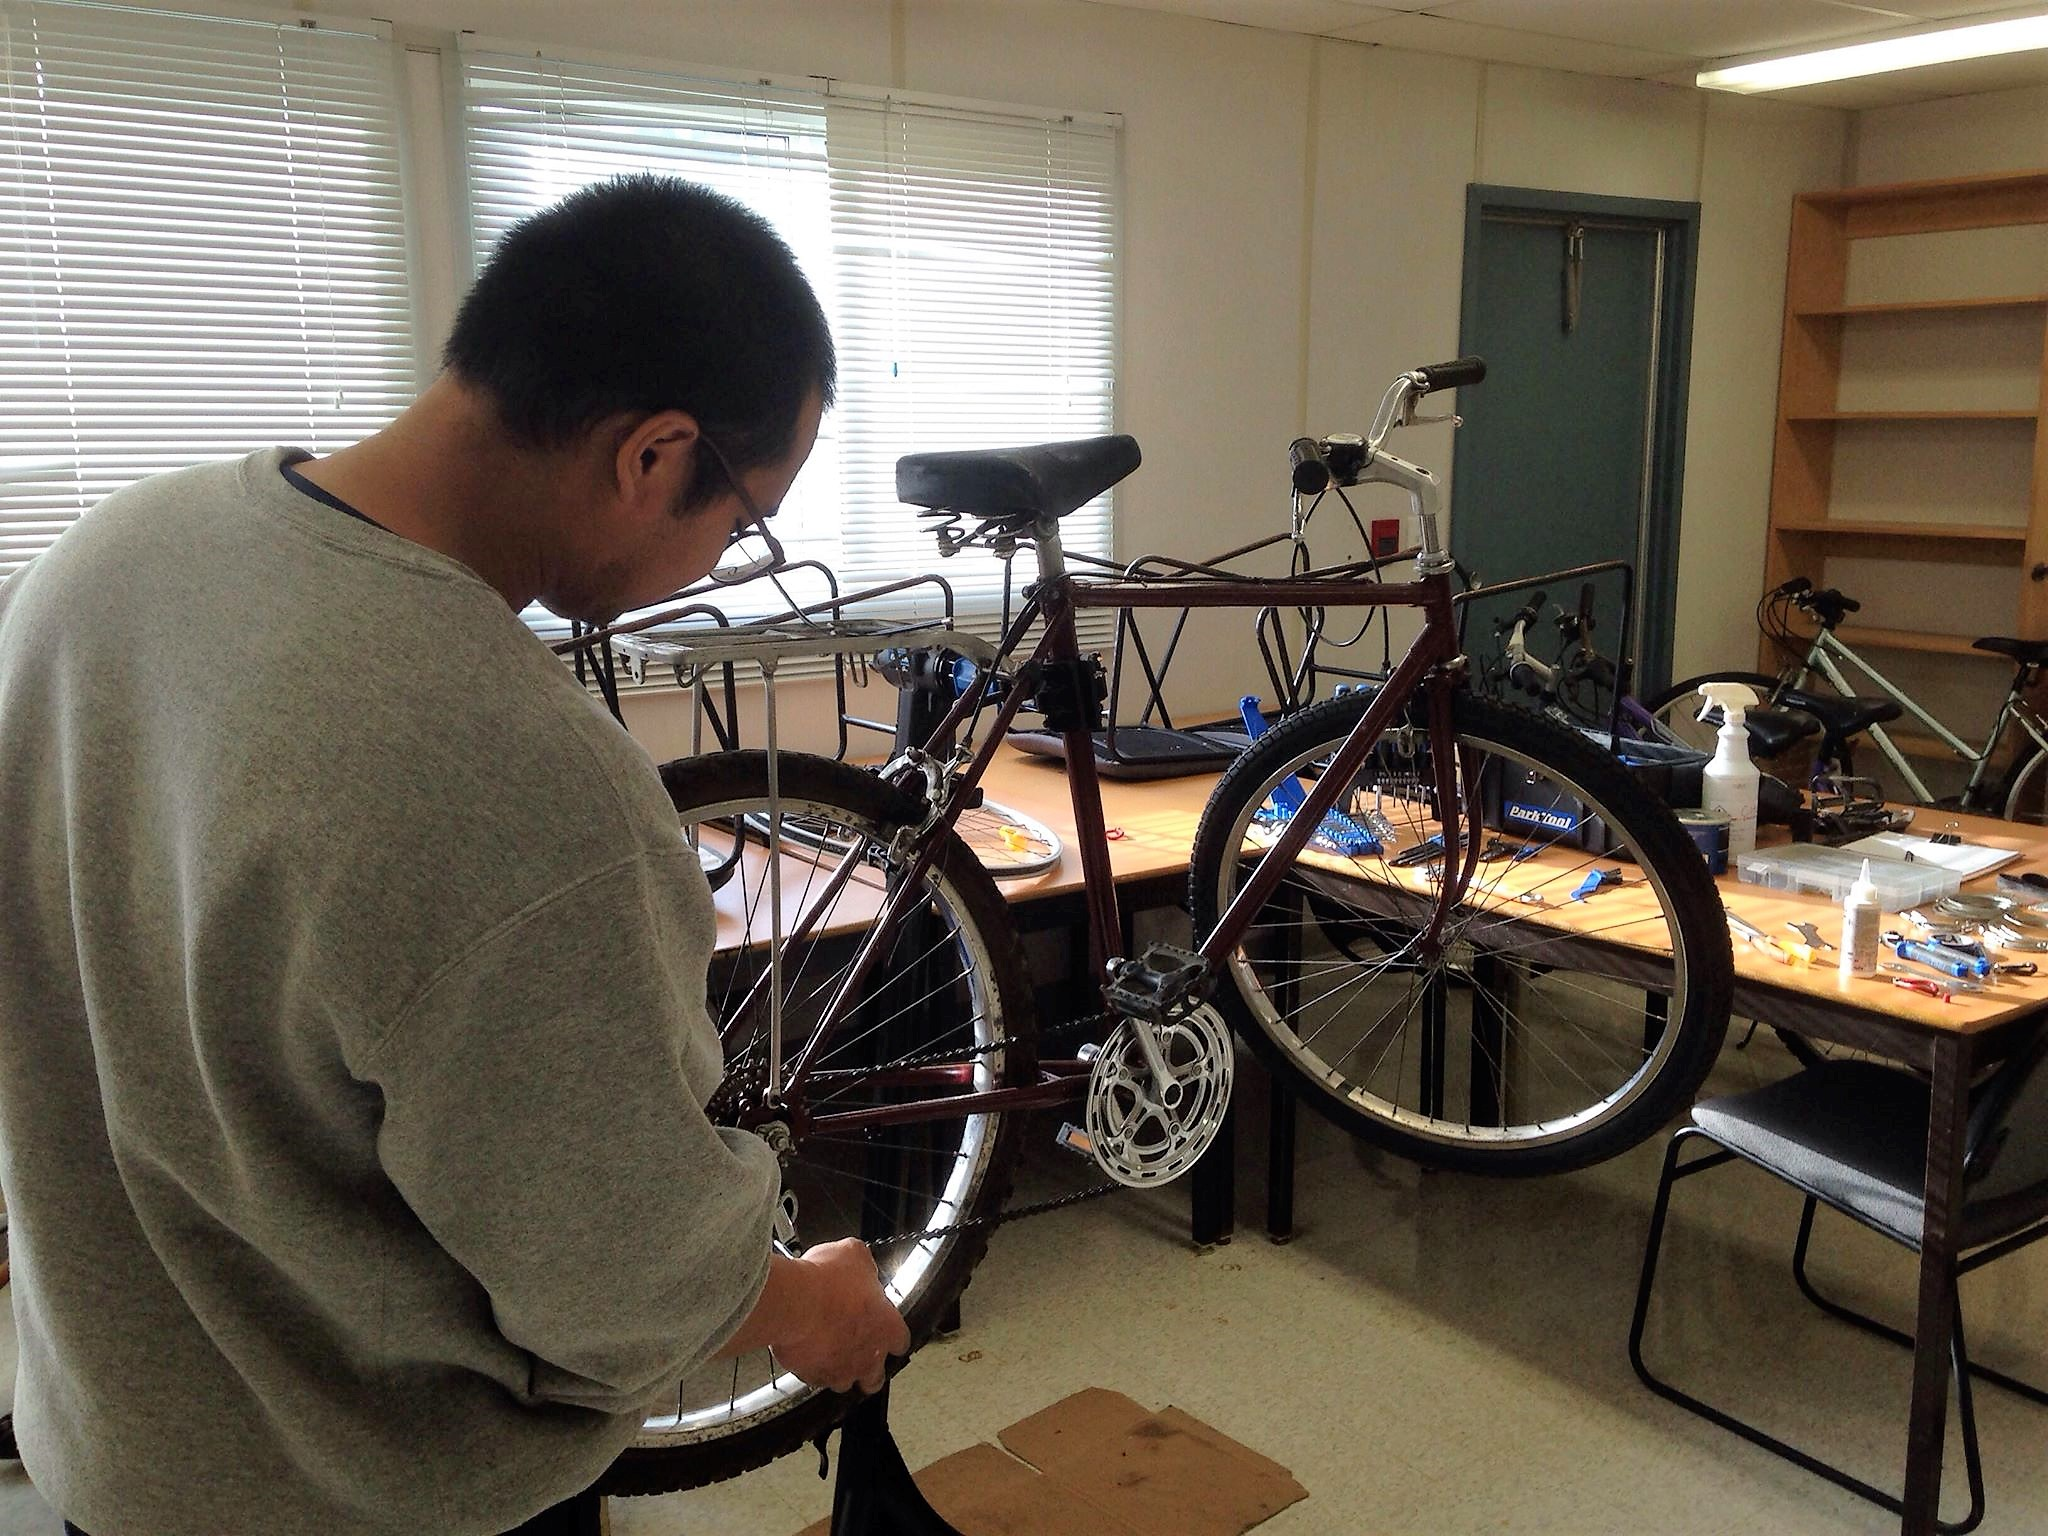 A man inspects his bike, checking the wheel and chain.